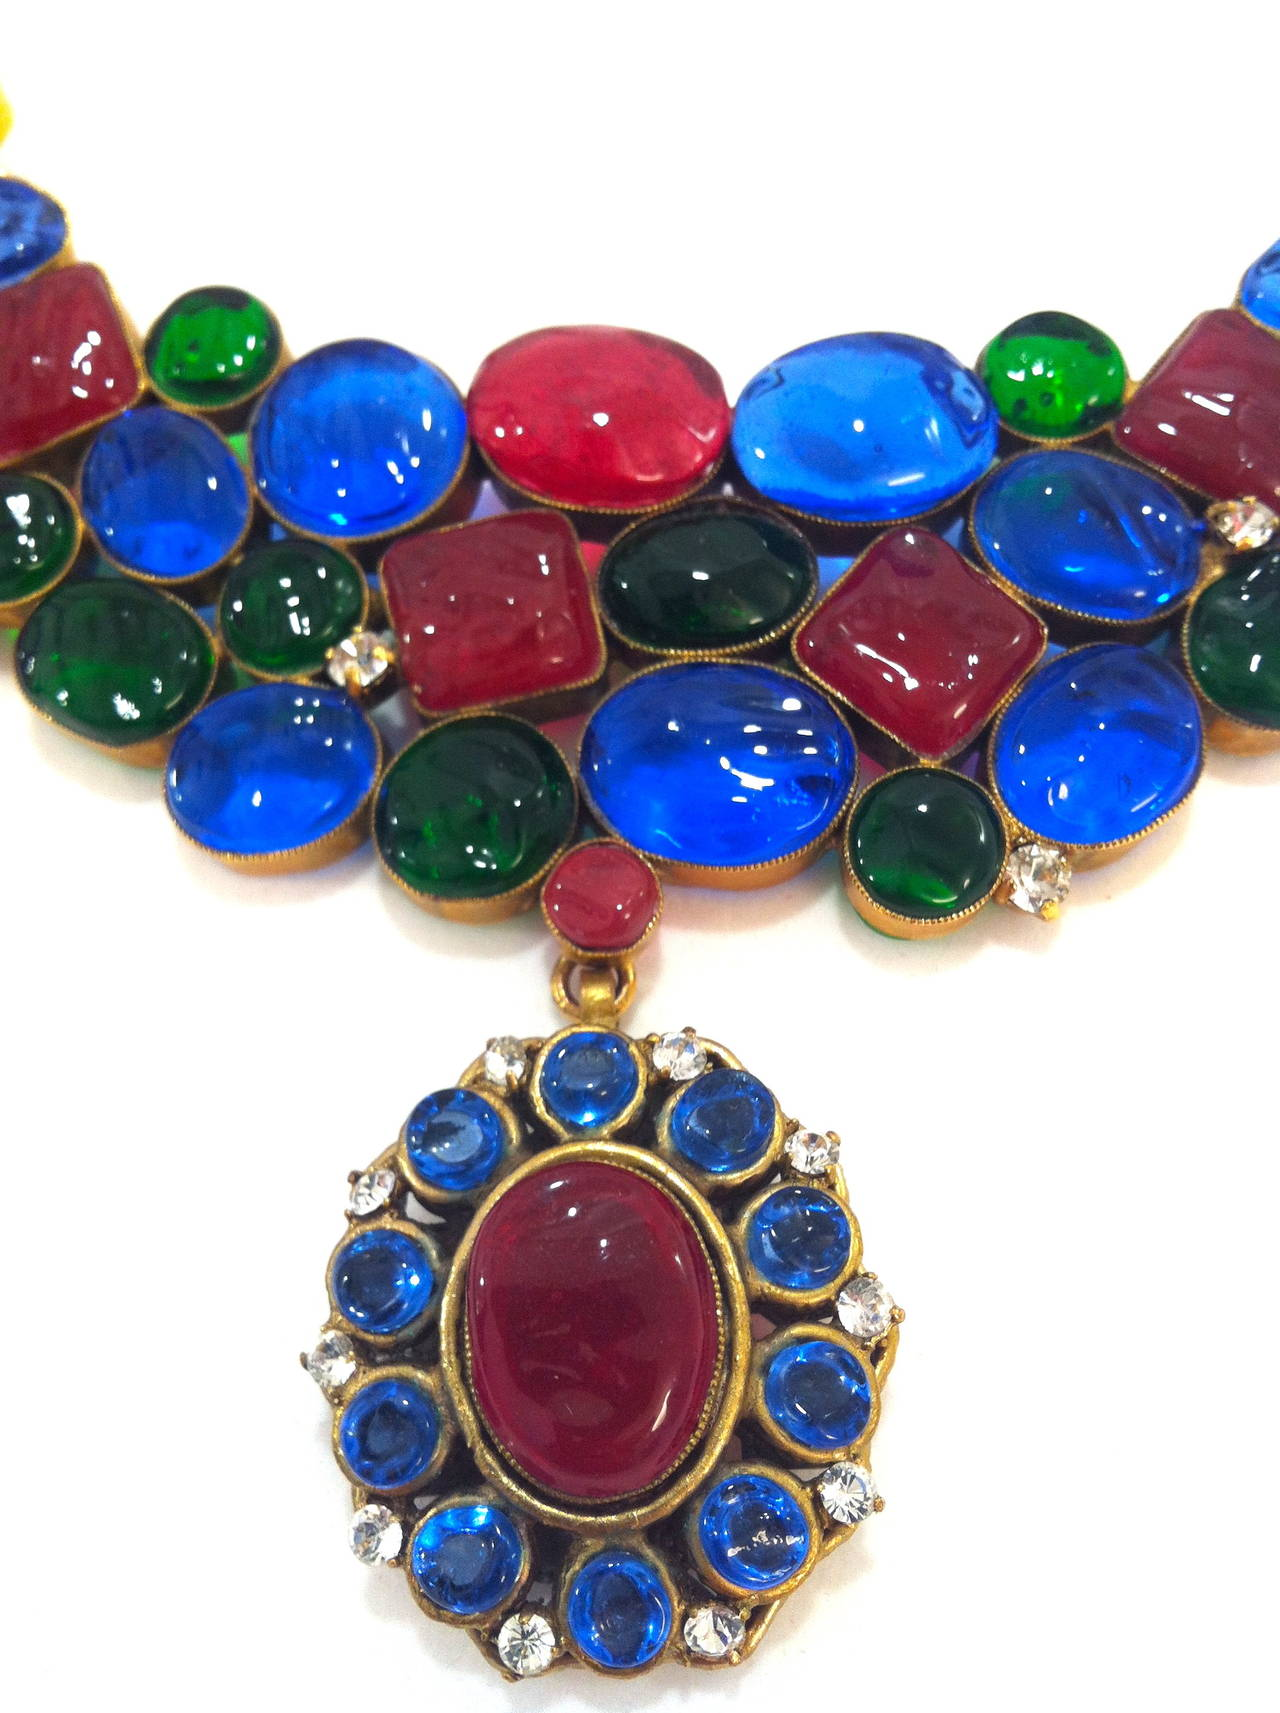 Rare 1970's Mademoiselle Chanel  Byzantine Necklace by Gripoix In Excellent Condition In New York, NY